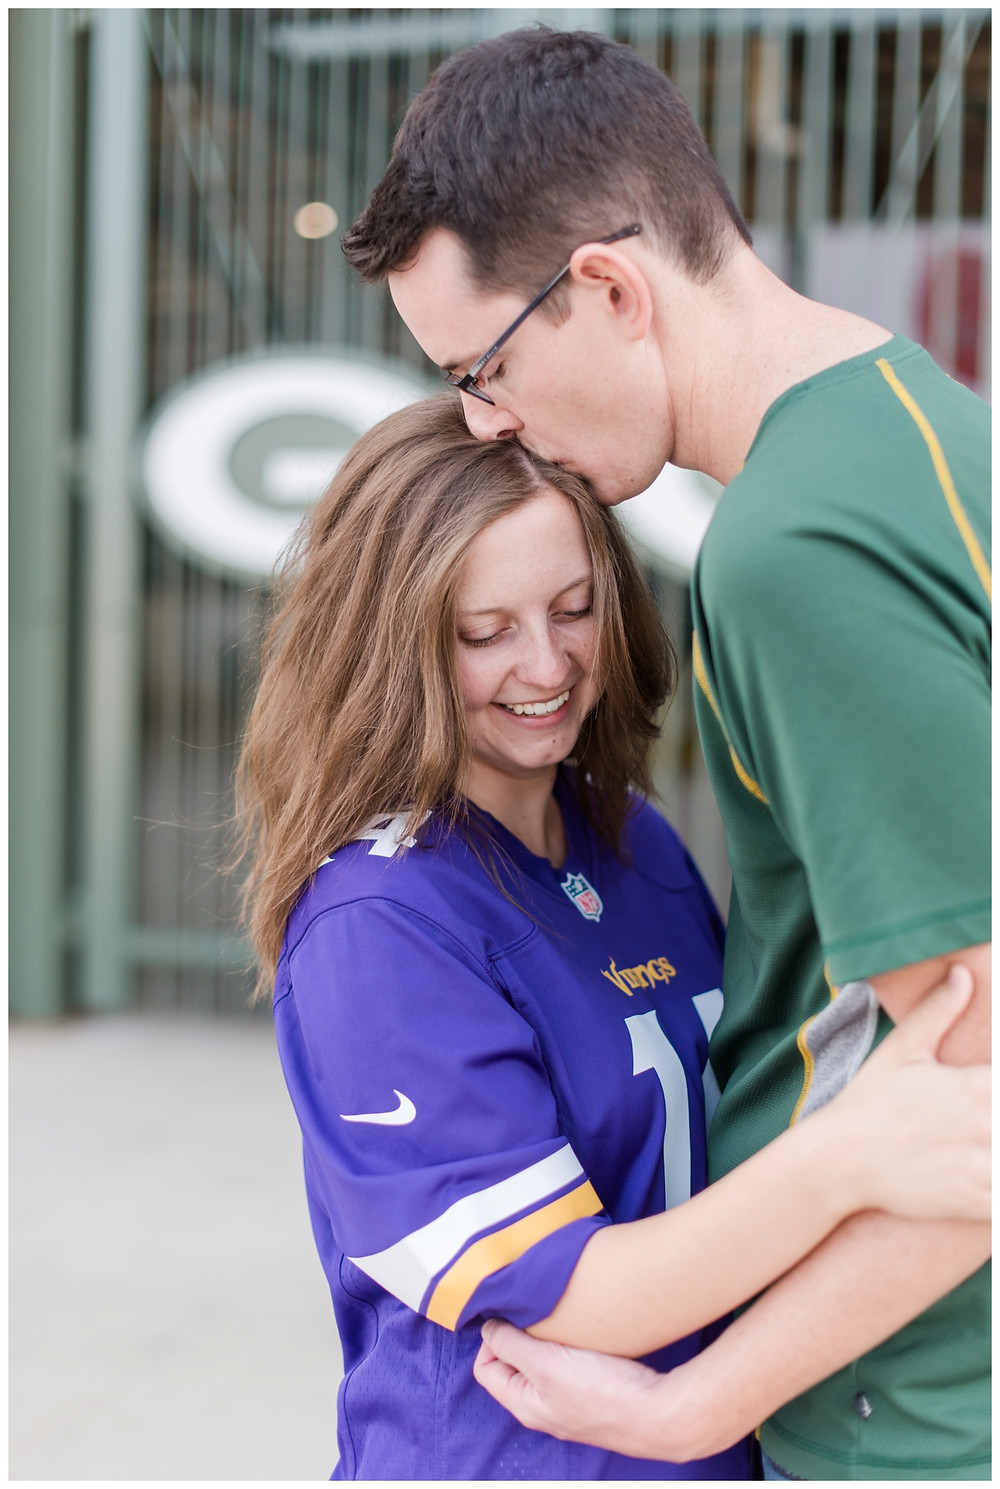 engaged-couple-kissing-forehead-holding-arms-at-downtown-green-bay-engagement-session-by-green-bay-wedding-photographer-kyra-rane-photography